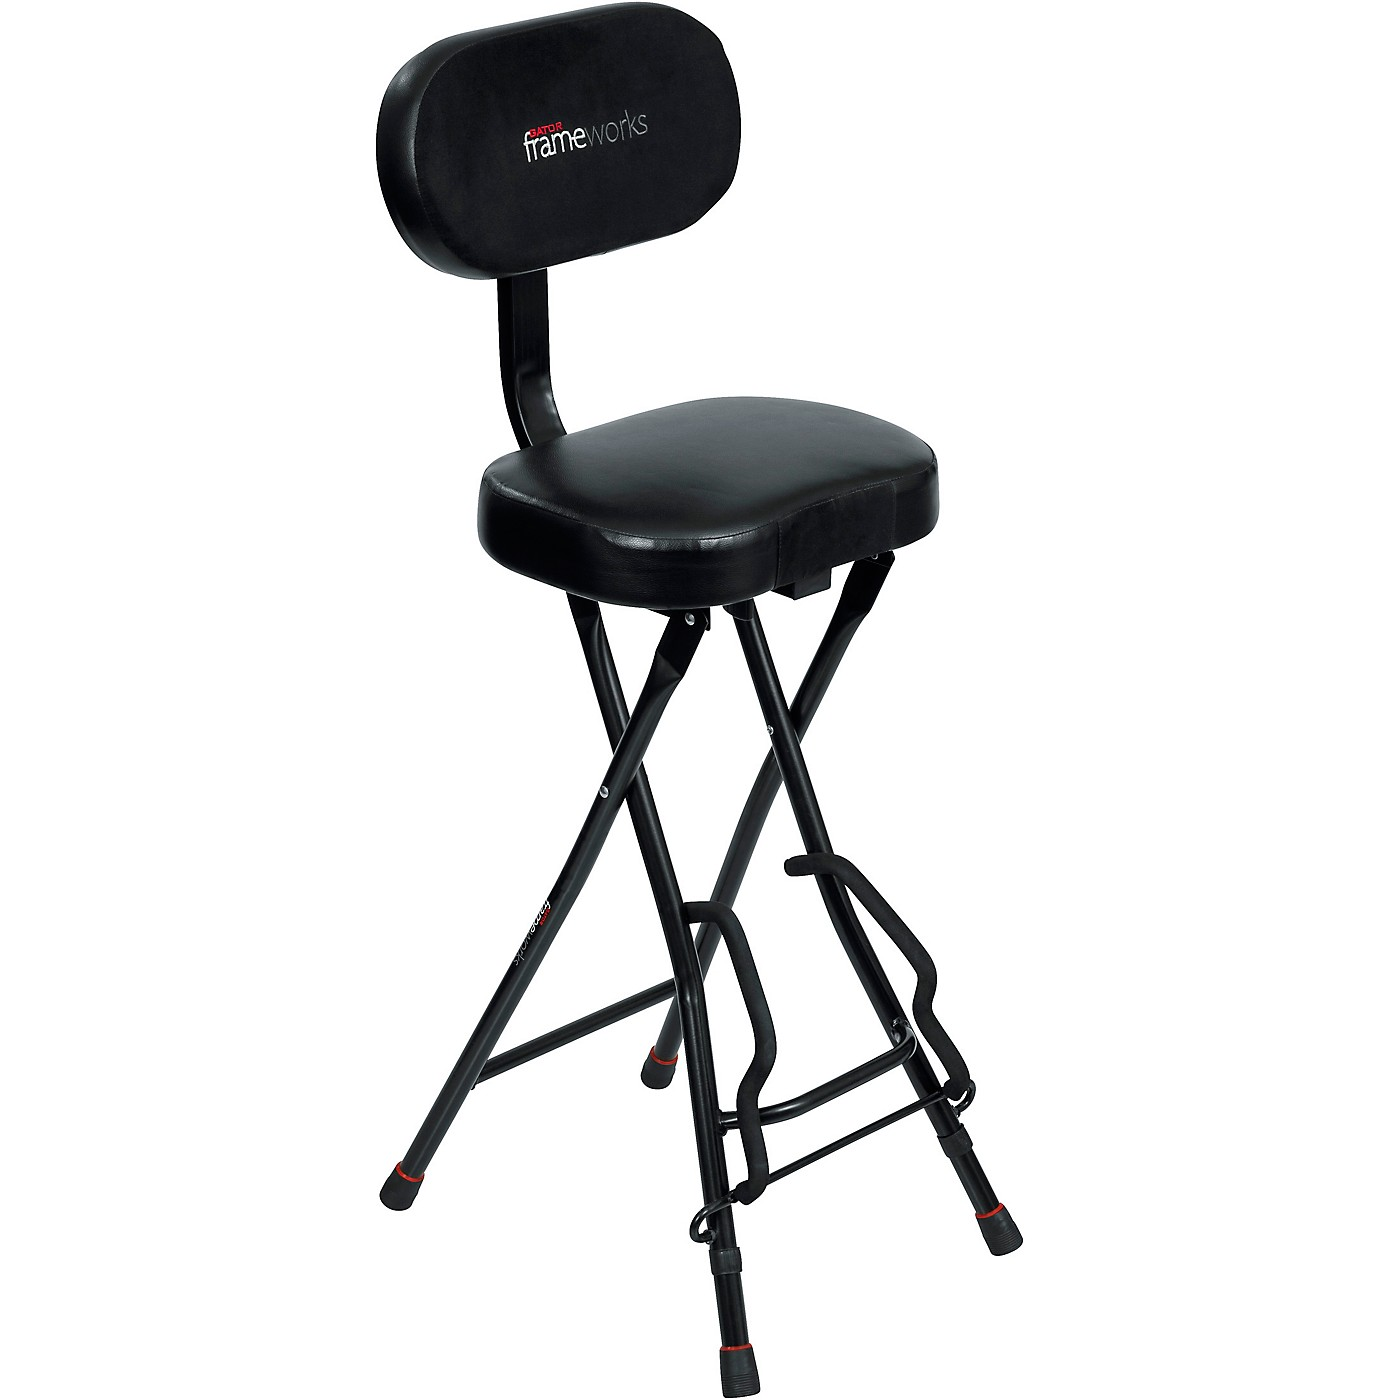 Gator Guitar Seat and Stand Combo thumbnail